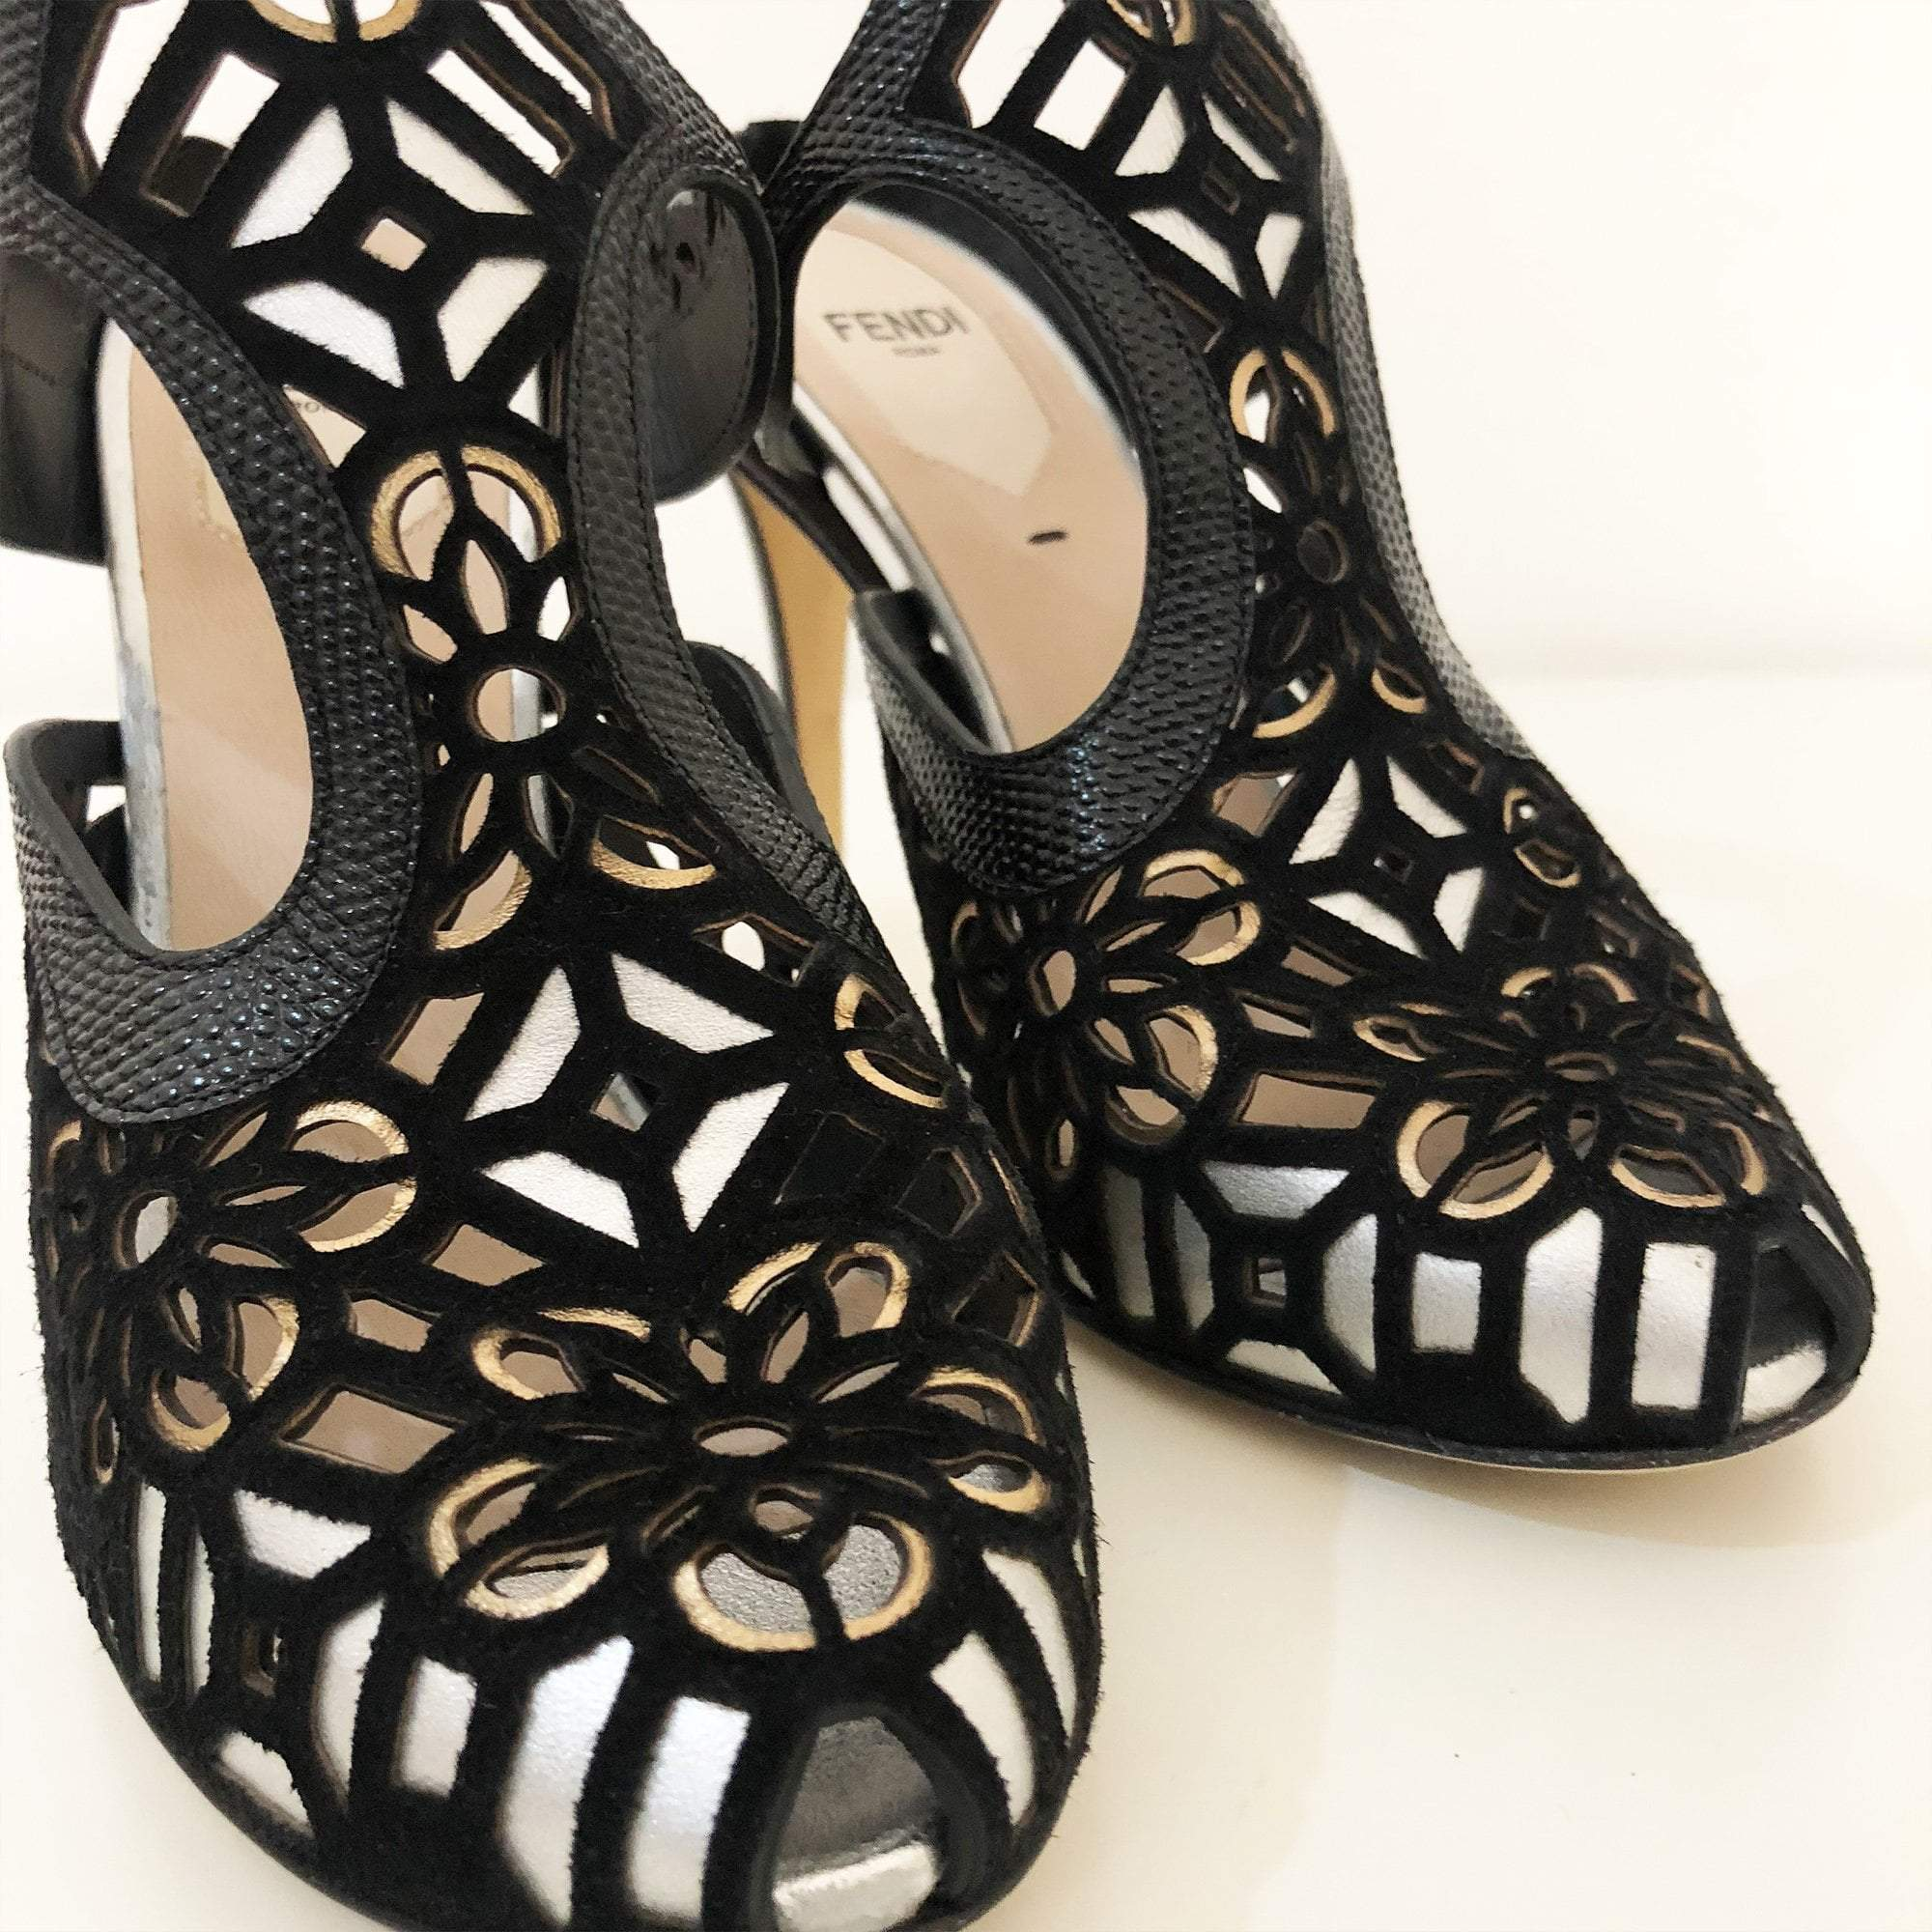 Fendi Black Laser Cut Mule Heels